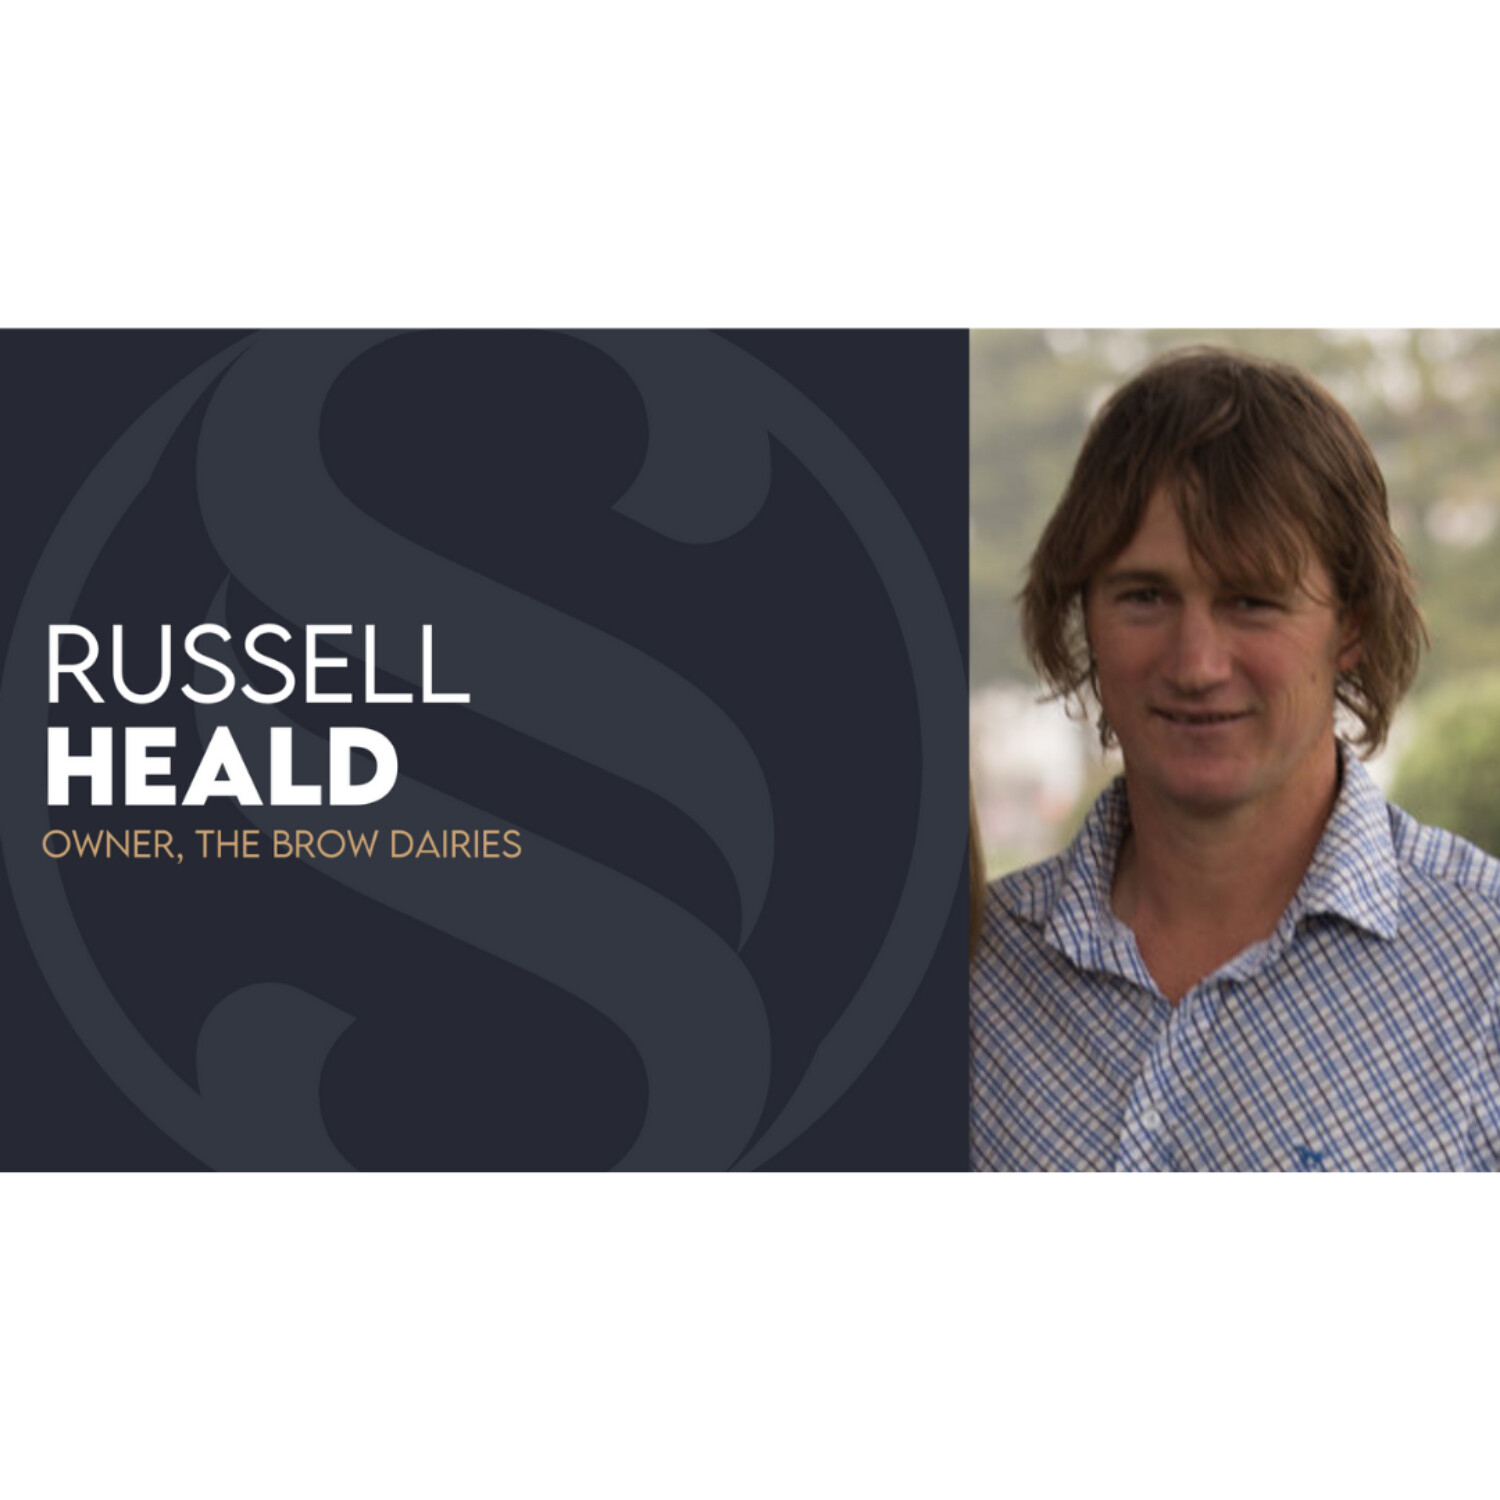 Farming regeneratively & profitably | Russell Heald